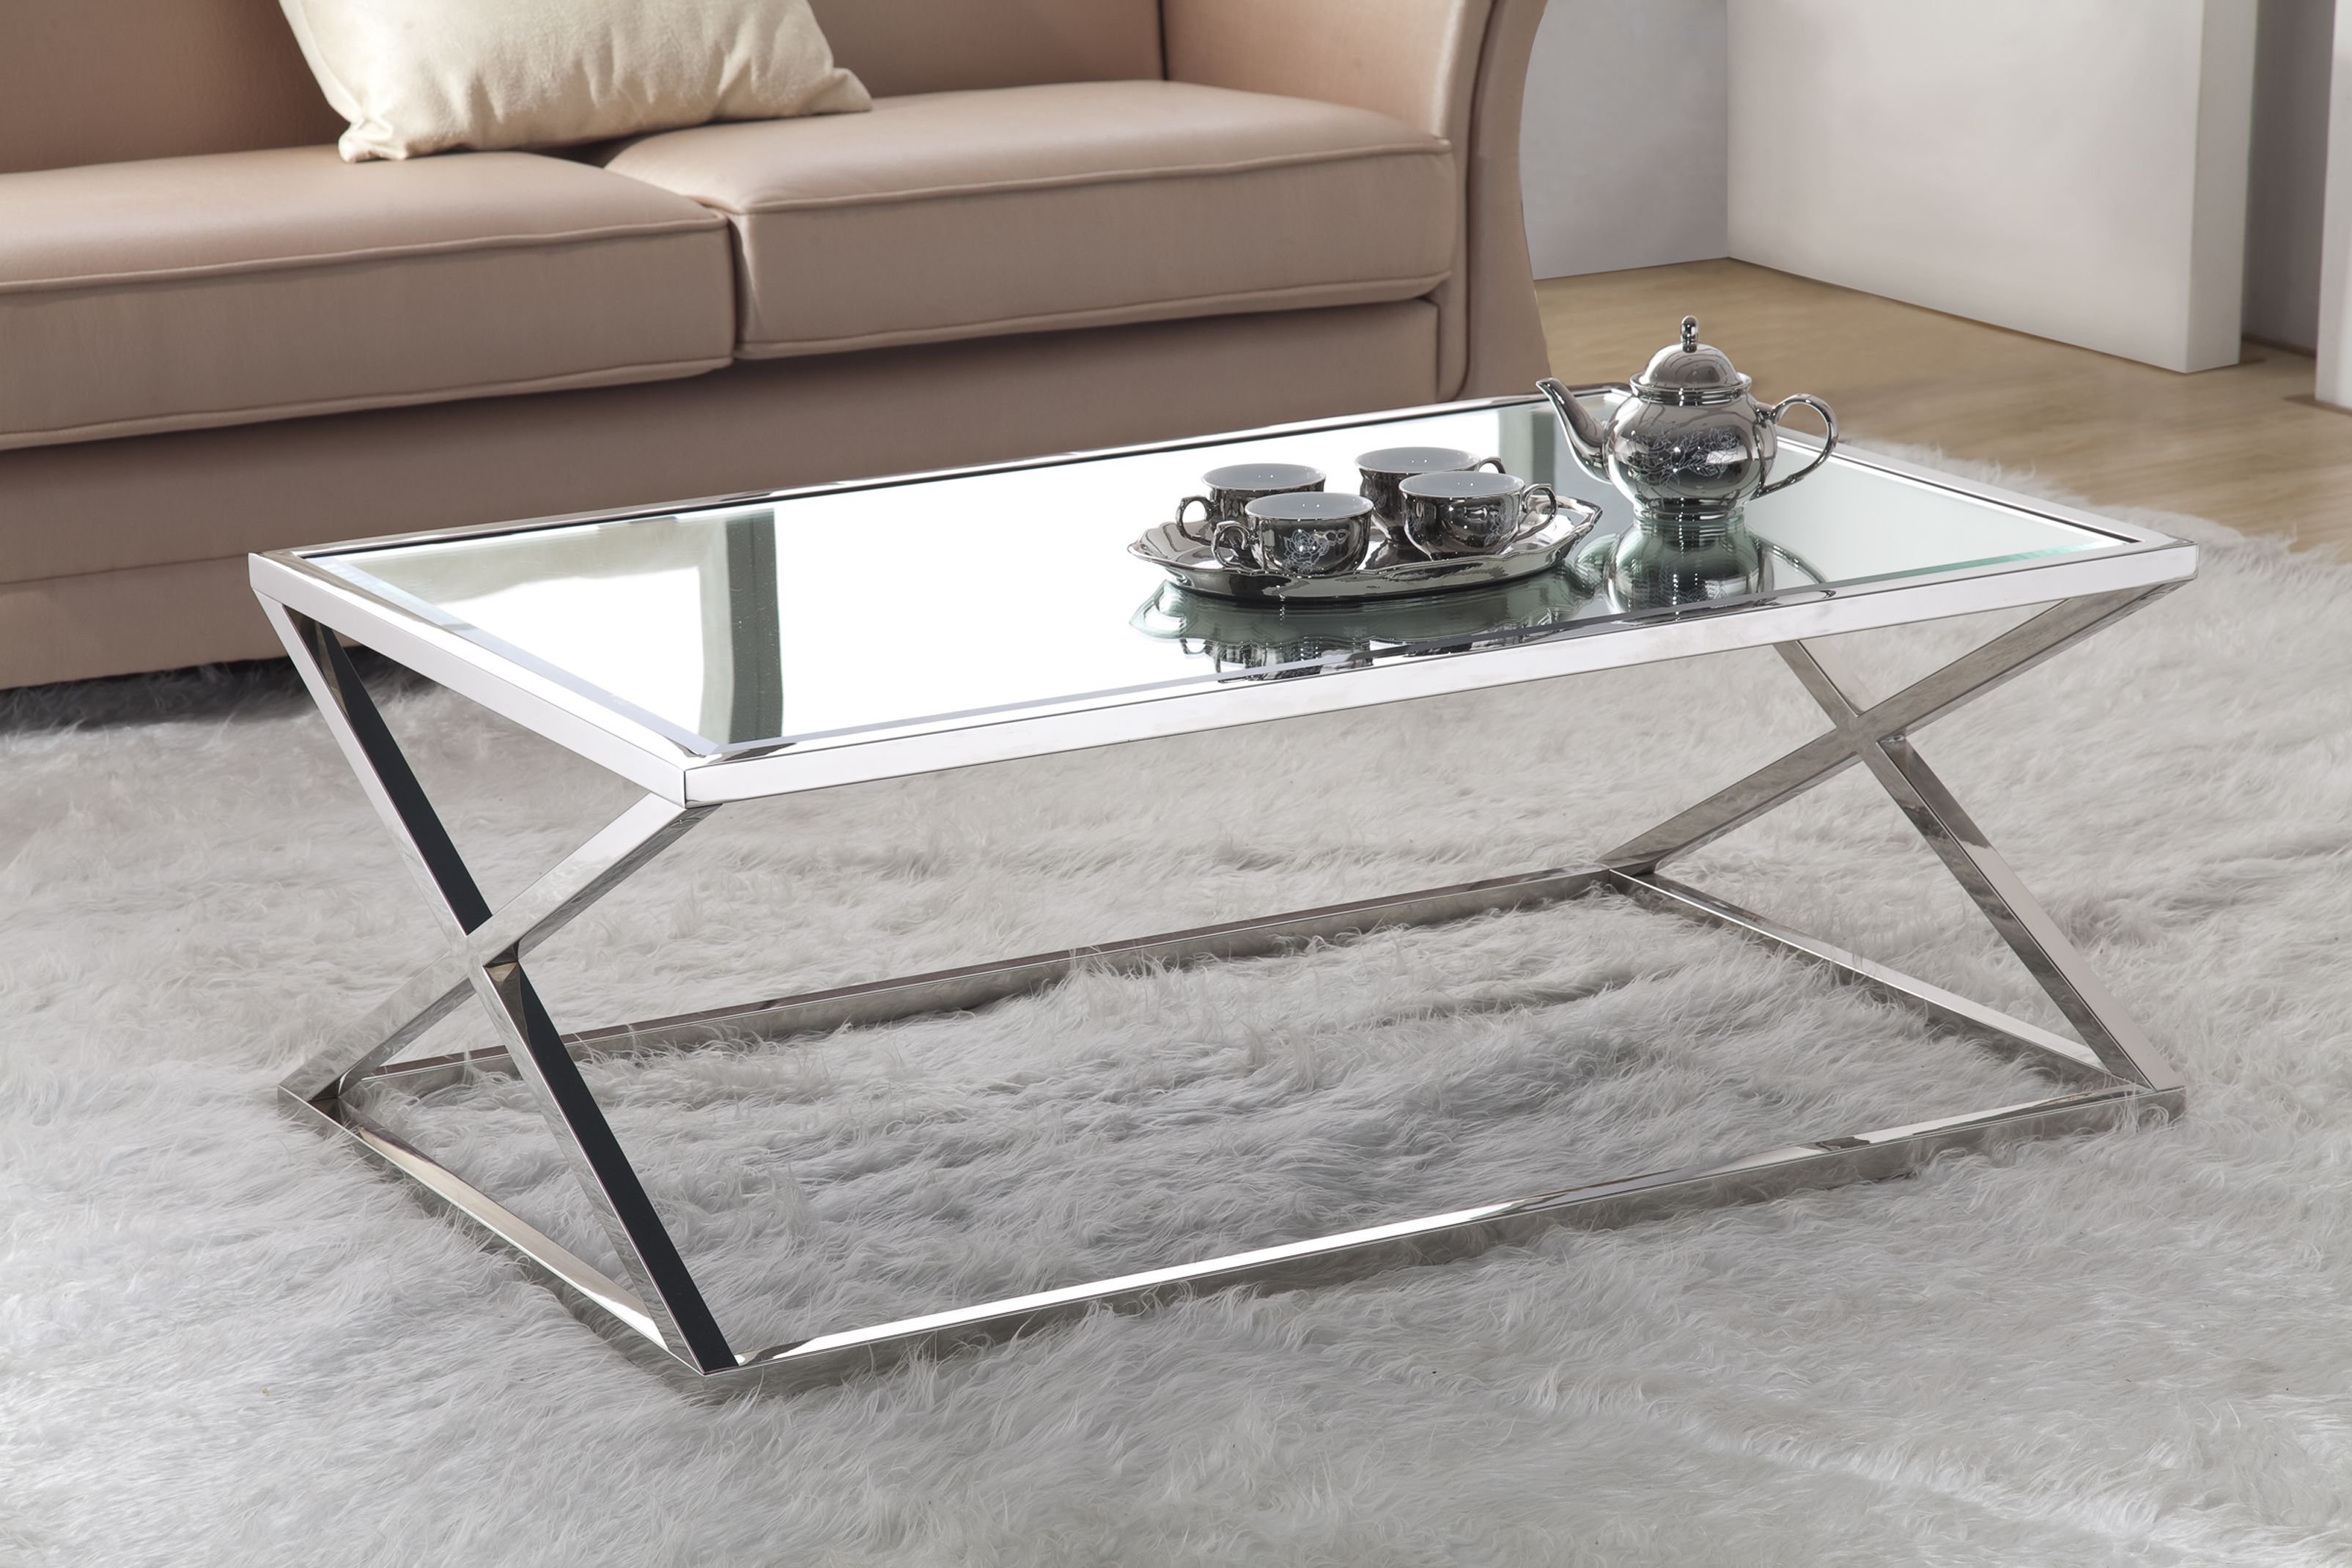 Contemporary Glass Coffee Tables Adding More Style Into The Room Ev Icin Dekor Mobilya